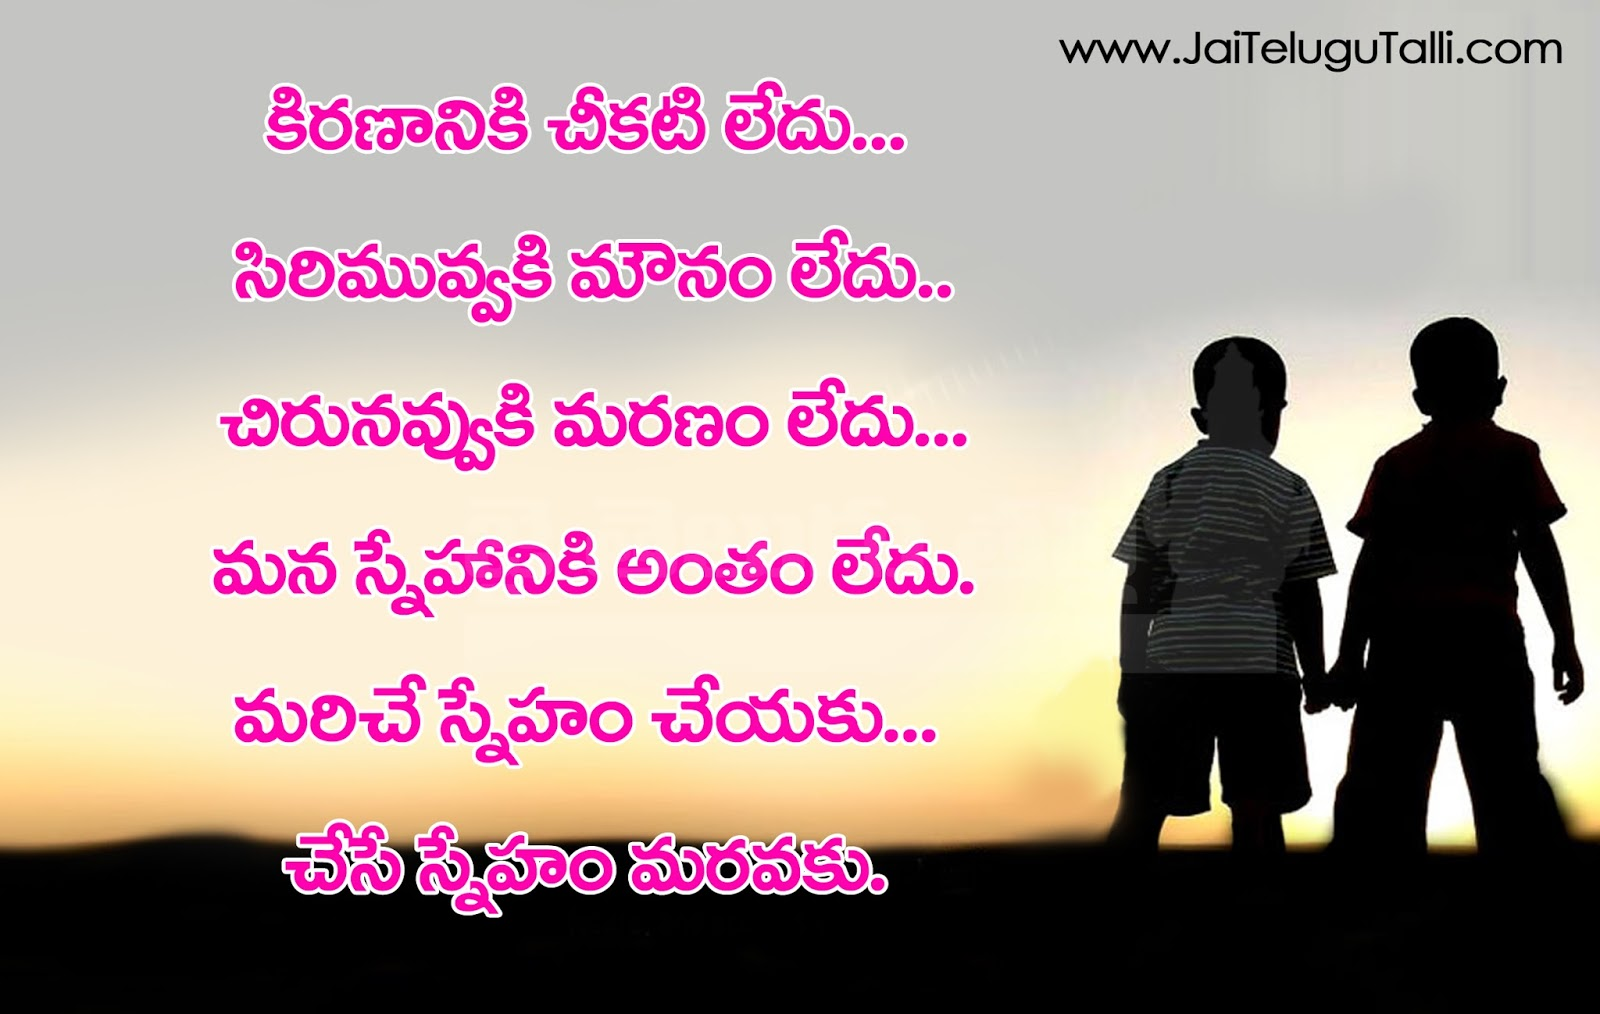 Motivational Quotes About Friendship Beautiful Friendship Pictures And Telugu Quotes  Www